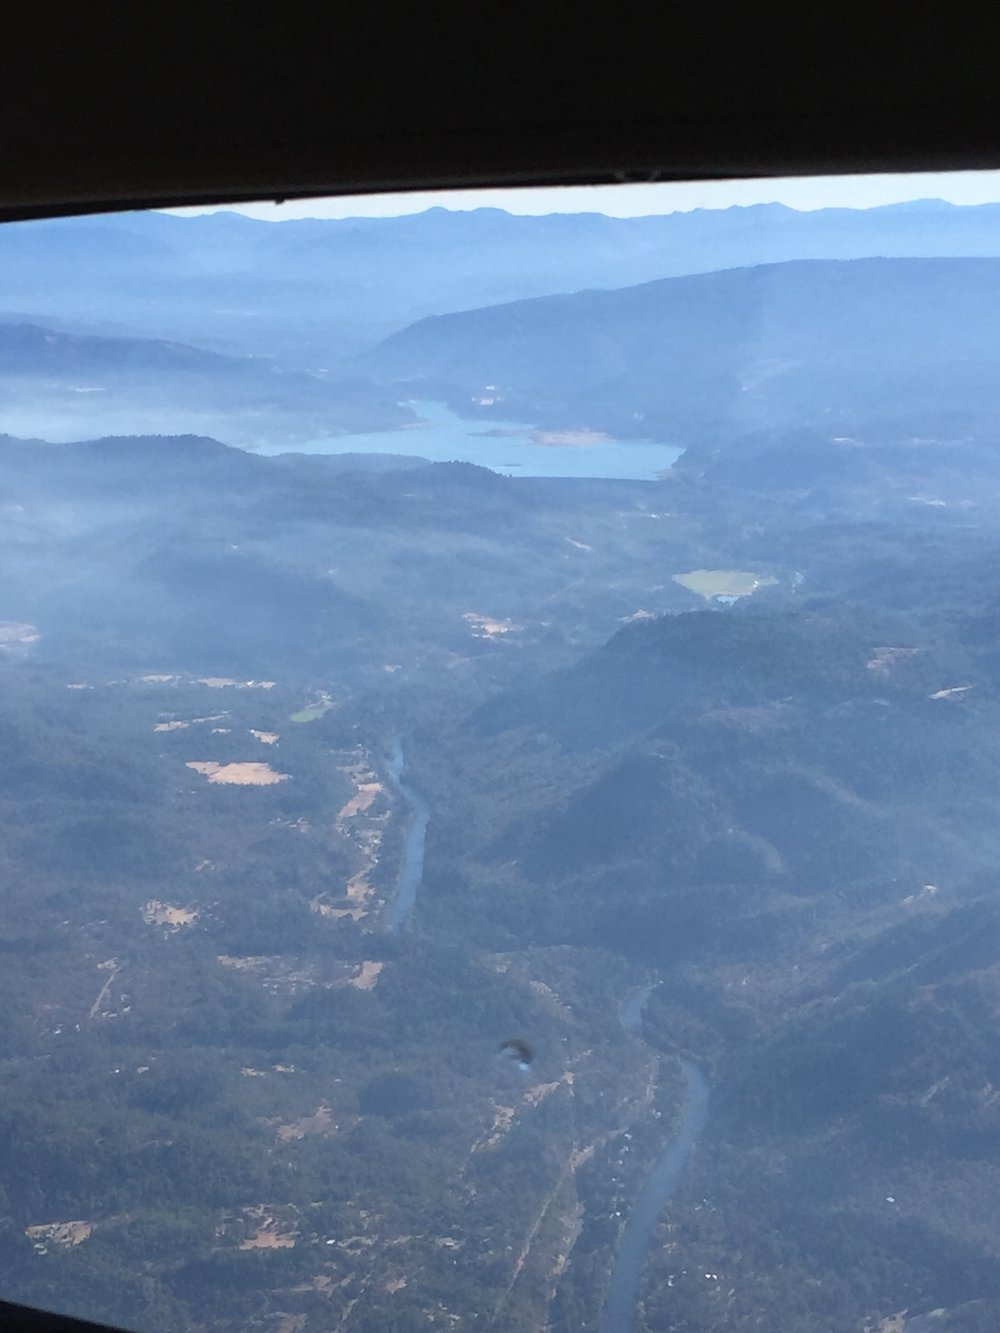 A view of Lost Creek Lake and the Rogue River near the proposed Pacific Connector Pipeline crossing around 2 miles upstream from Shady Cove, Oregon. Smoke from the Miles fire clouds the image.